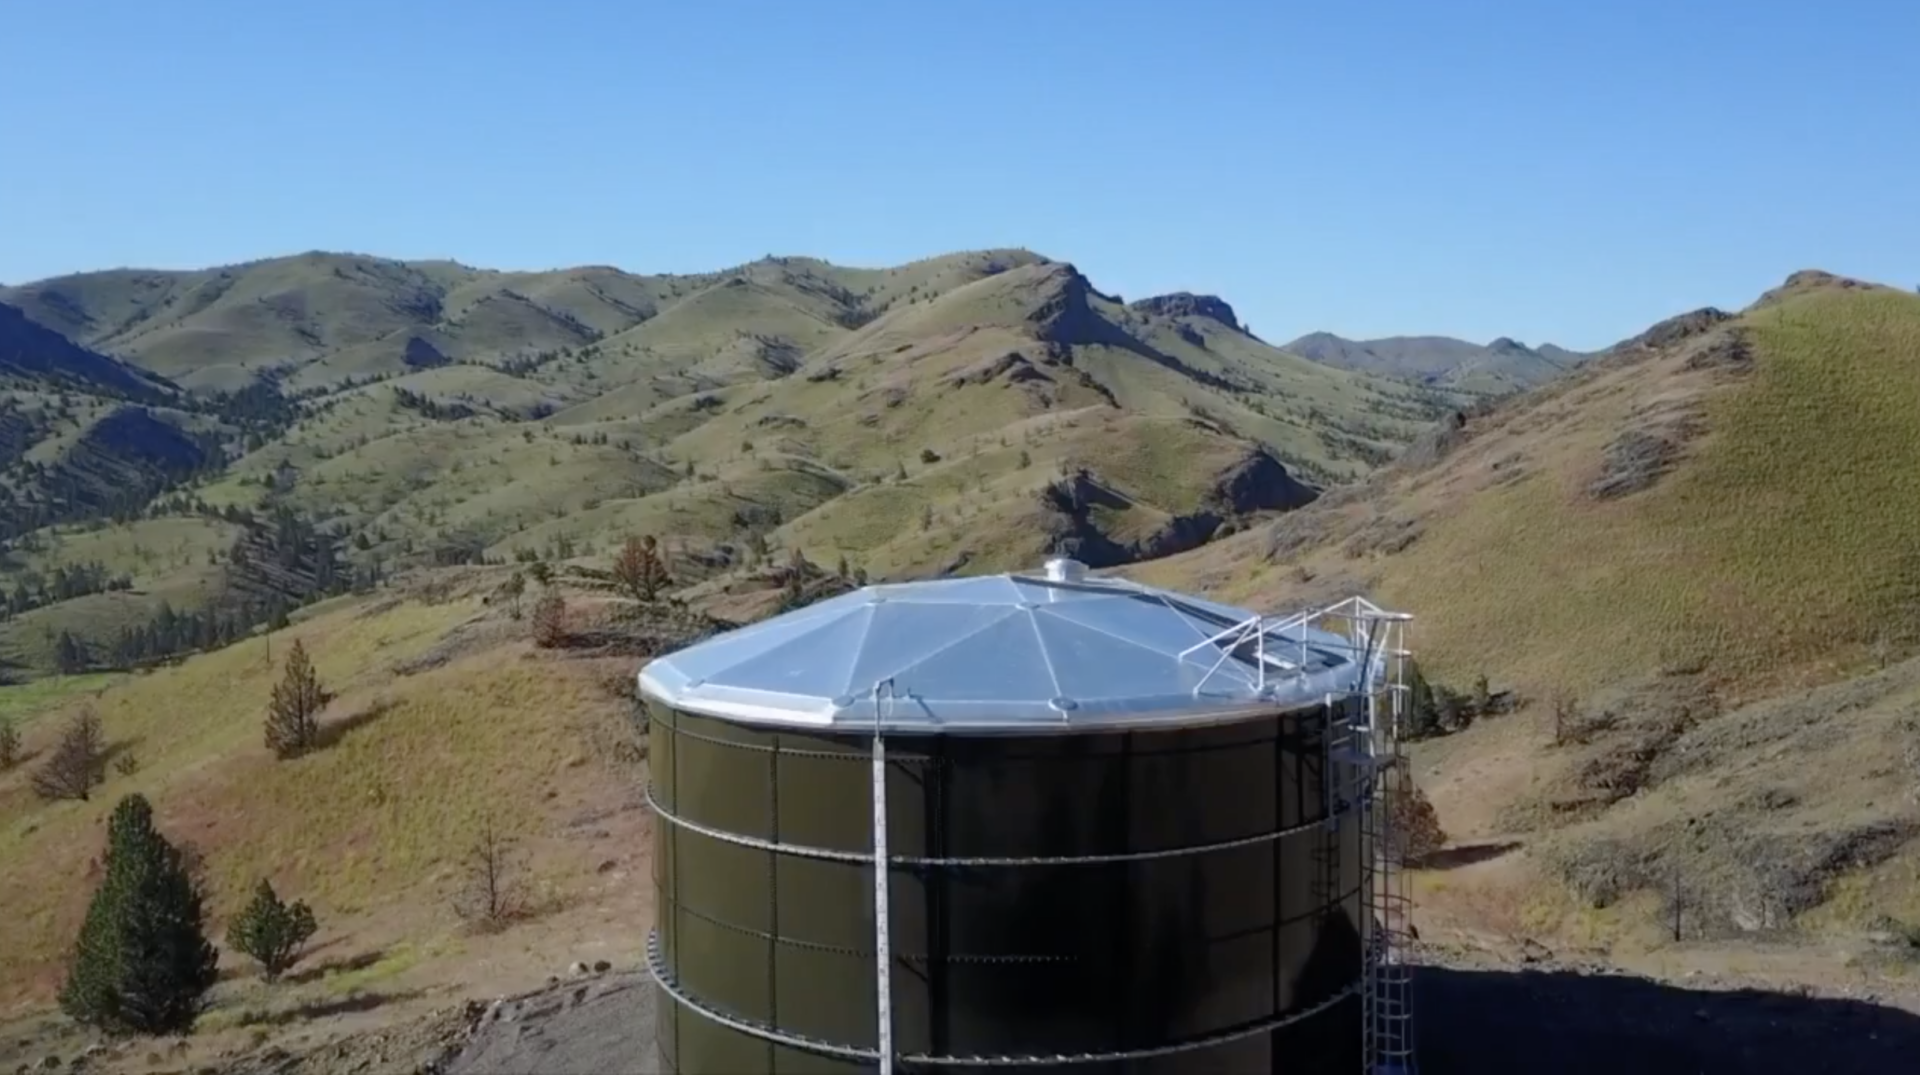 black water tank in a hill